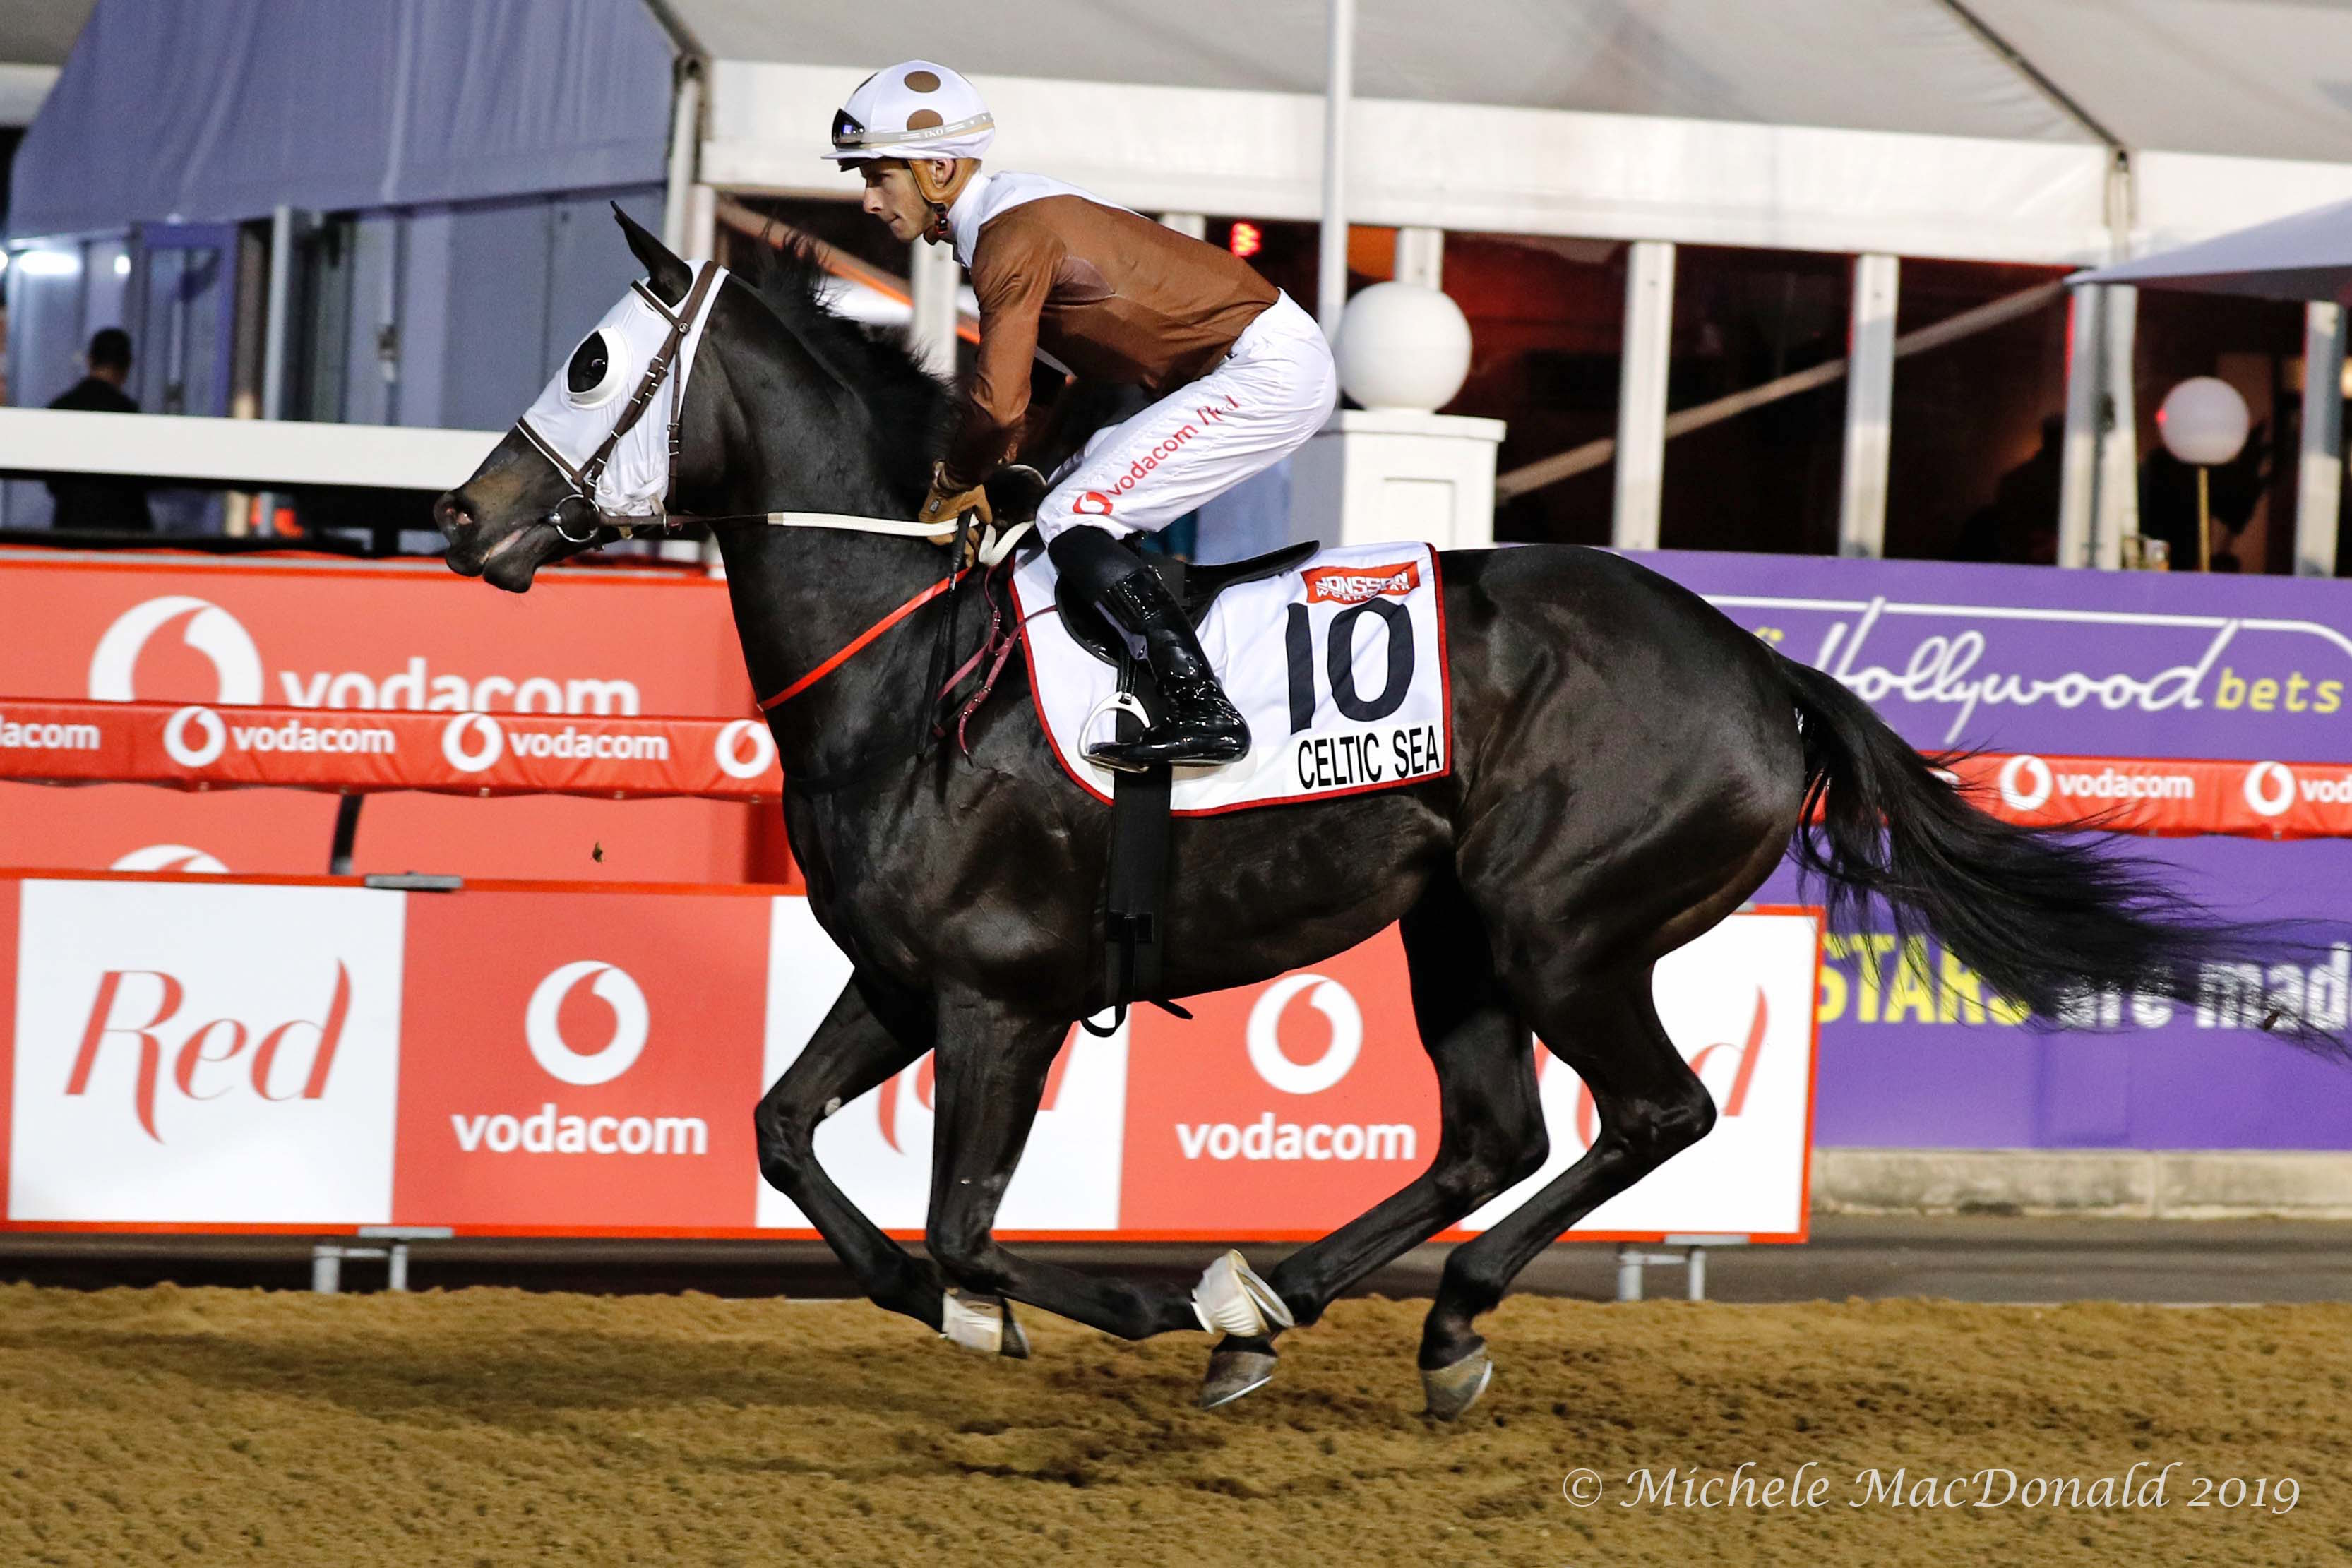 Grade 1 heroes: Lyle Hewitson on Celtic Sea in a warm-up gallop before winning the G1 Garden Province Stakes on this year's Durban July card. The Captain Al filly is trained by South Africa's multi-champion Sean Tarry and owned by Antony Beck, who also owns Gainesway Farm in Kentucky. Photo: Michele MacDonald